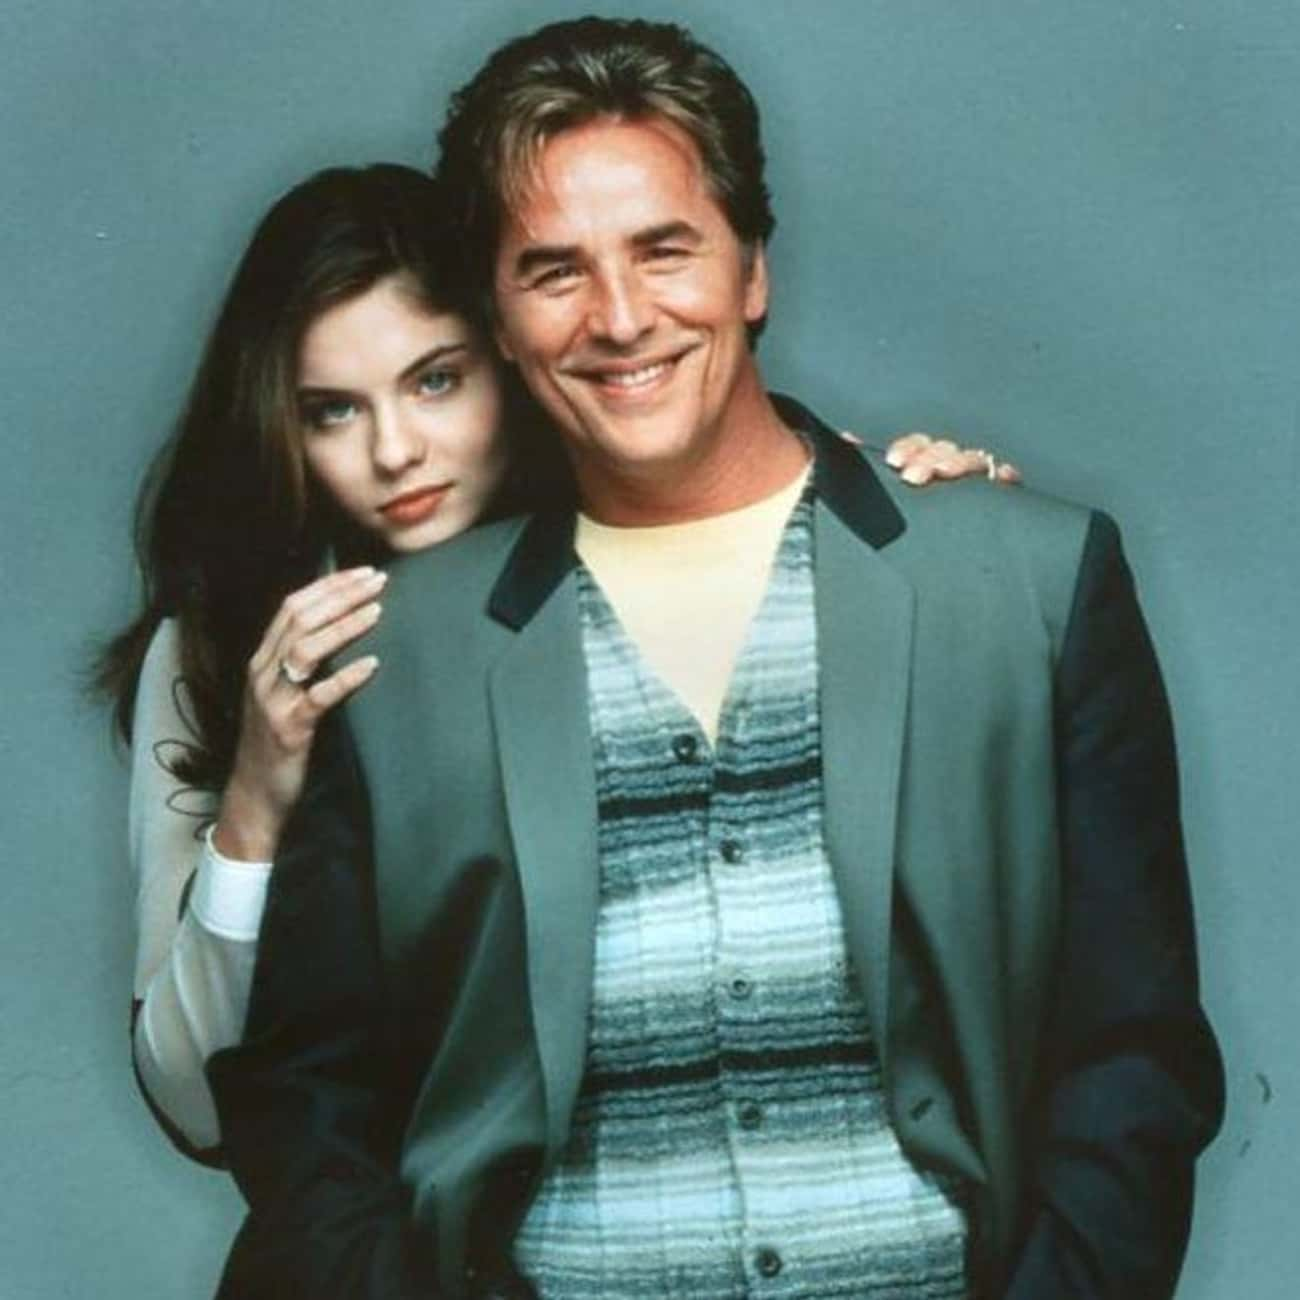 Jodi Lyn O'Keefe is listed (or ranked) 4 on the list Don Johnson Loves and Hookups